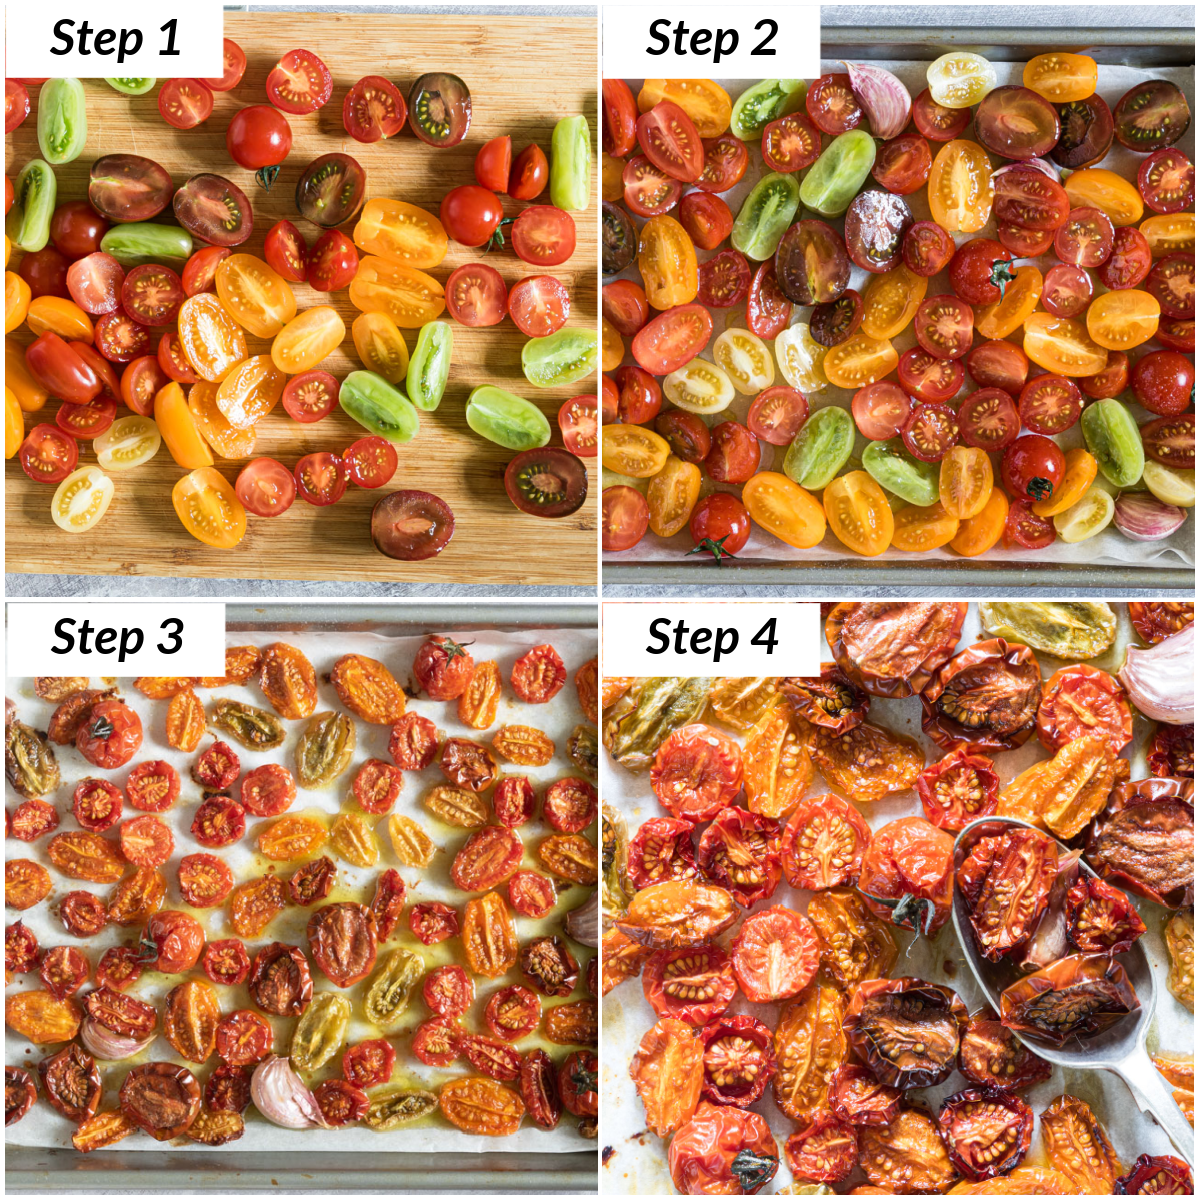 image collage showing the steps for making slow roasted tomatoes